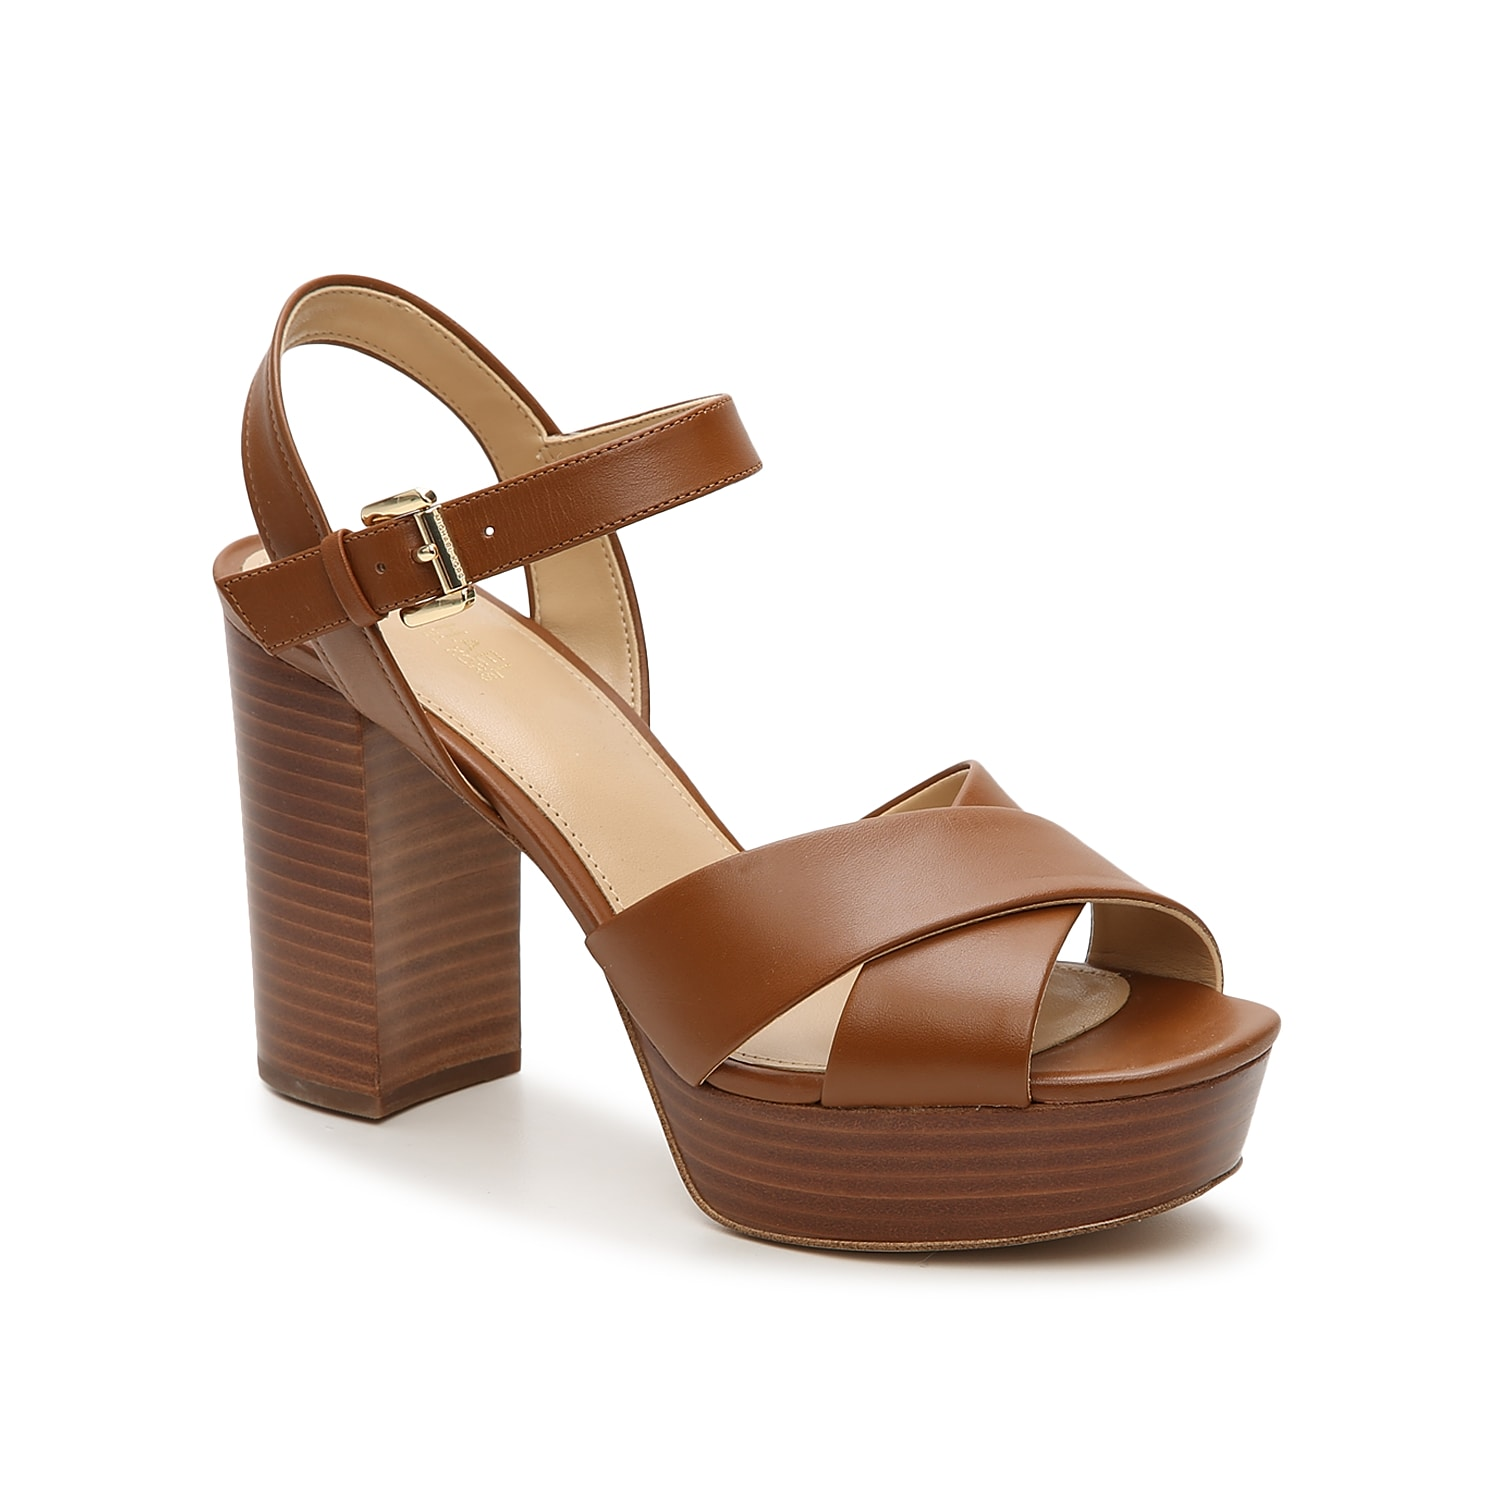 Take your warm weather wardrobe to new heights with the Diva platform sandal from Michael Michael Kors. This leather pair features a retro-inspired platform and block heel for eye-catching appeal.